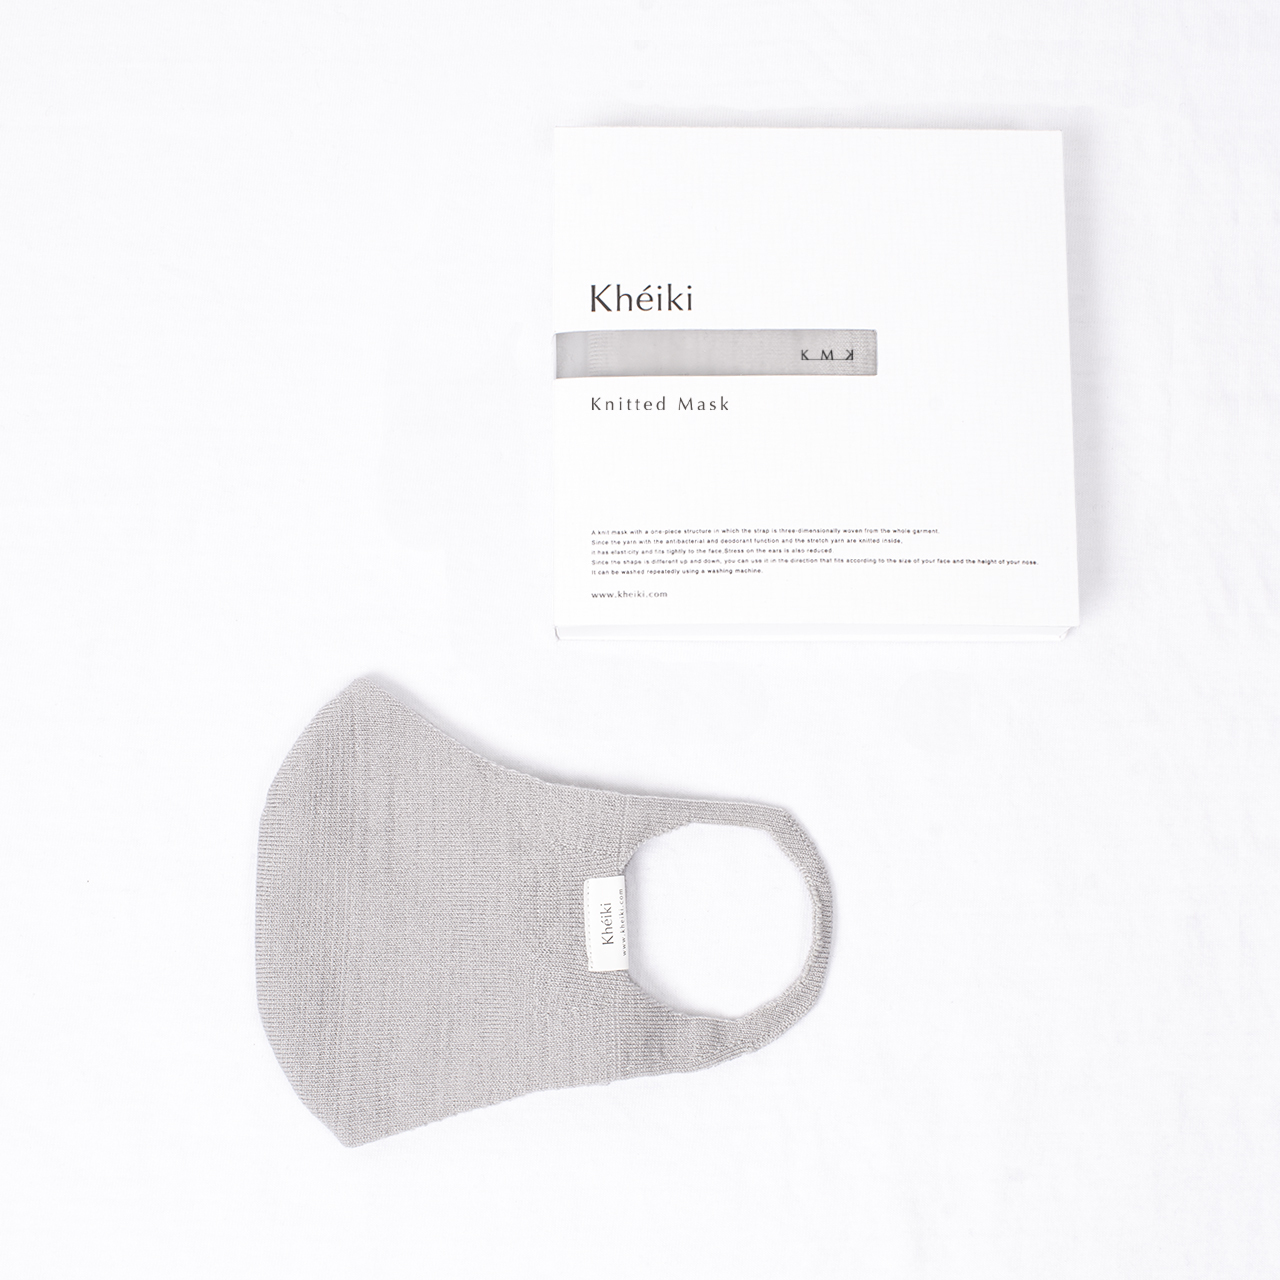 Knitted Mask 2pcs Set / KMK / #Pale Gray